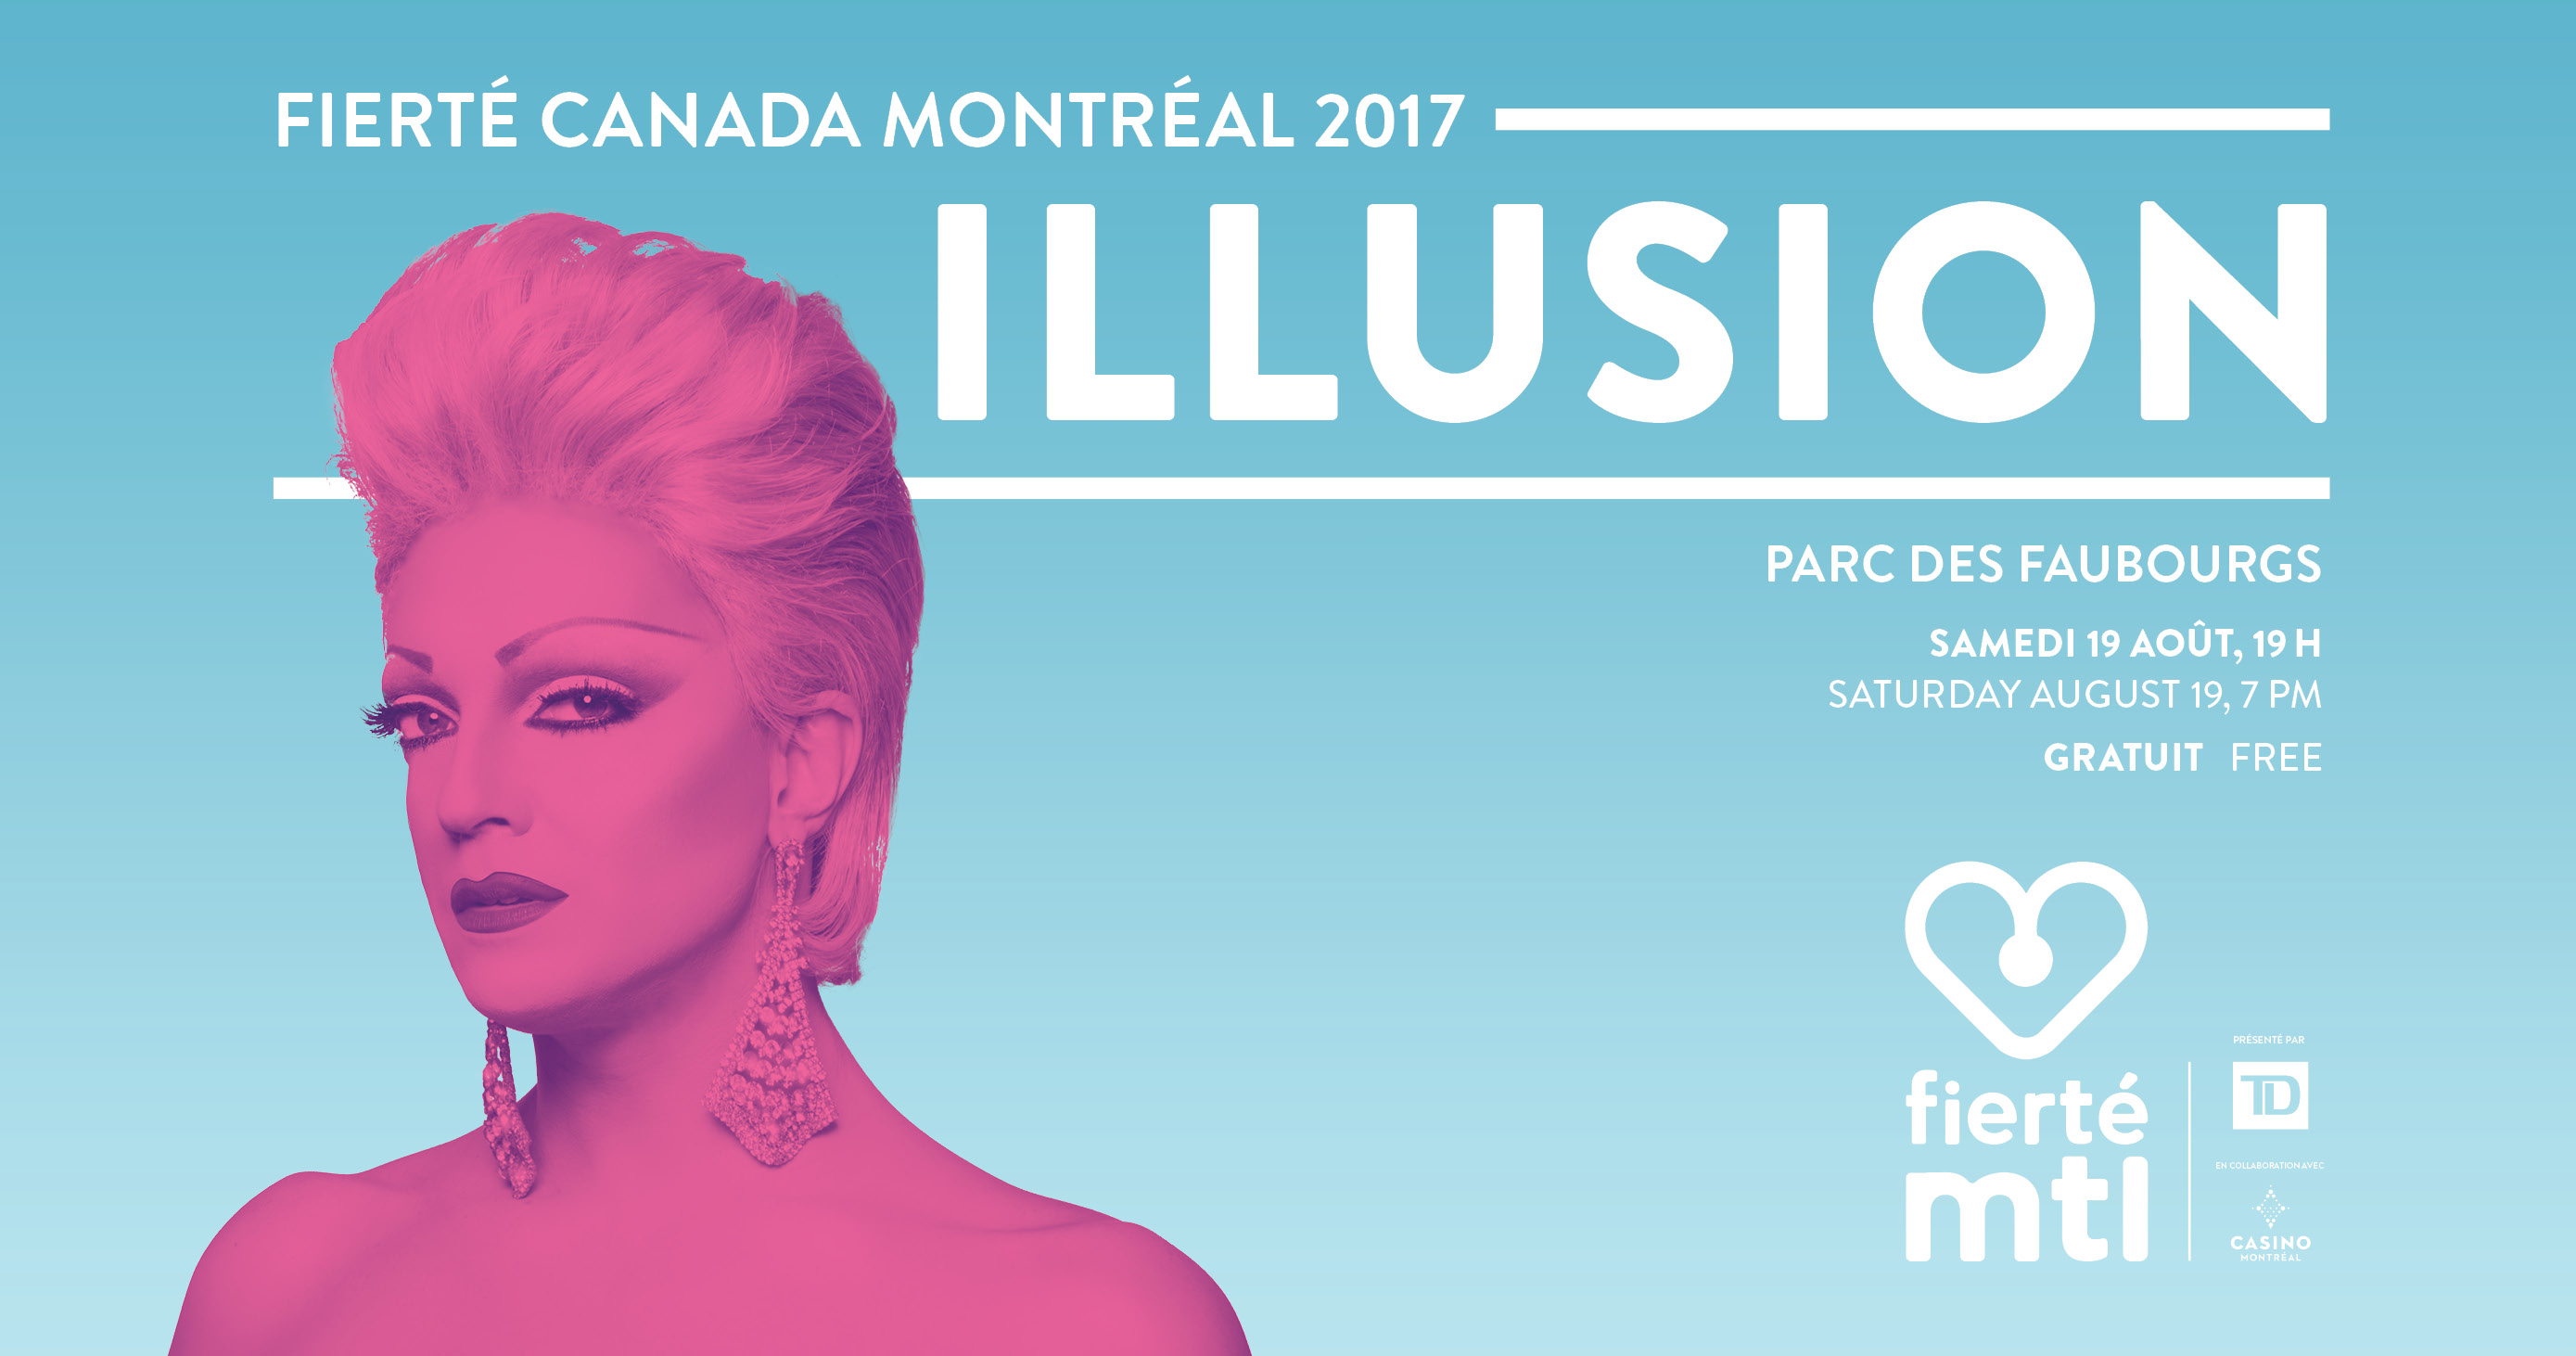 montreal pride fierté illusion drag drague